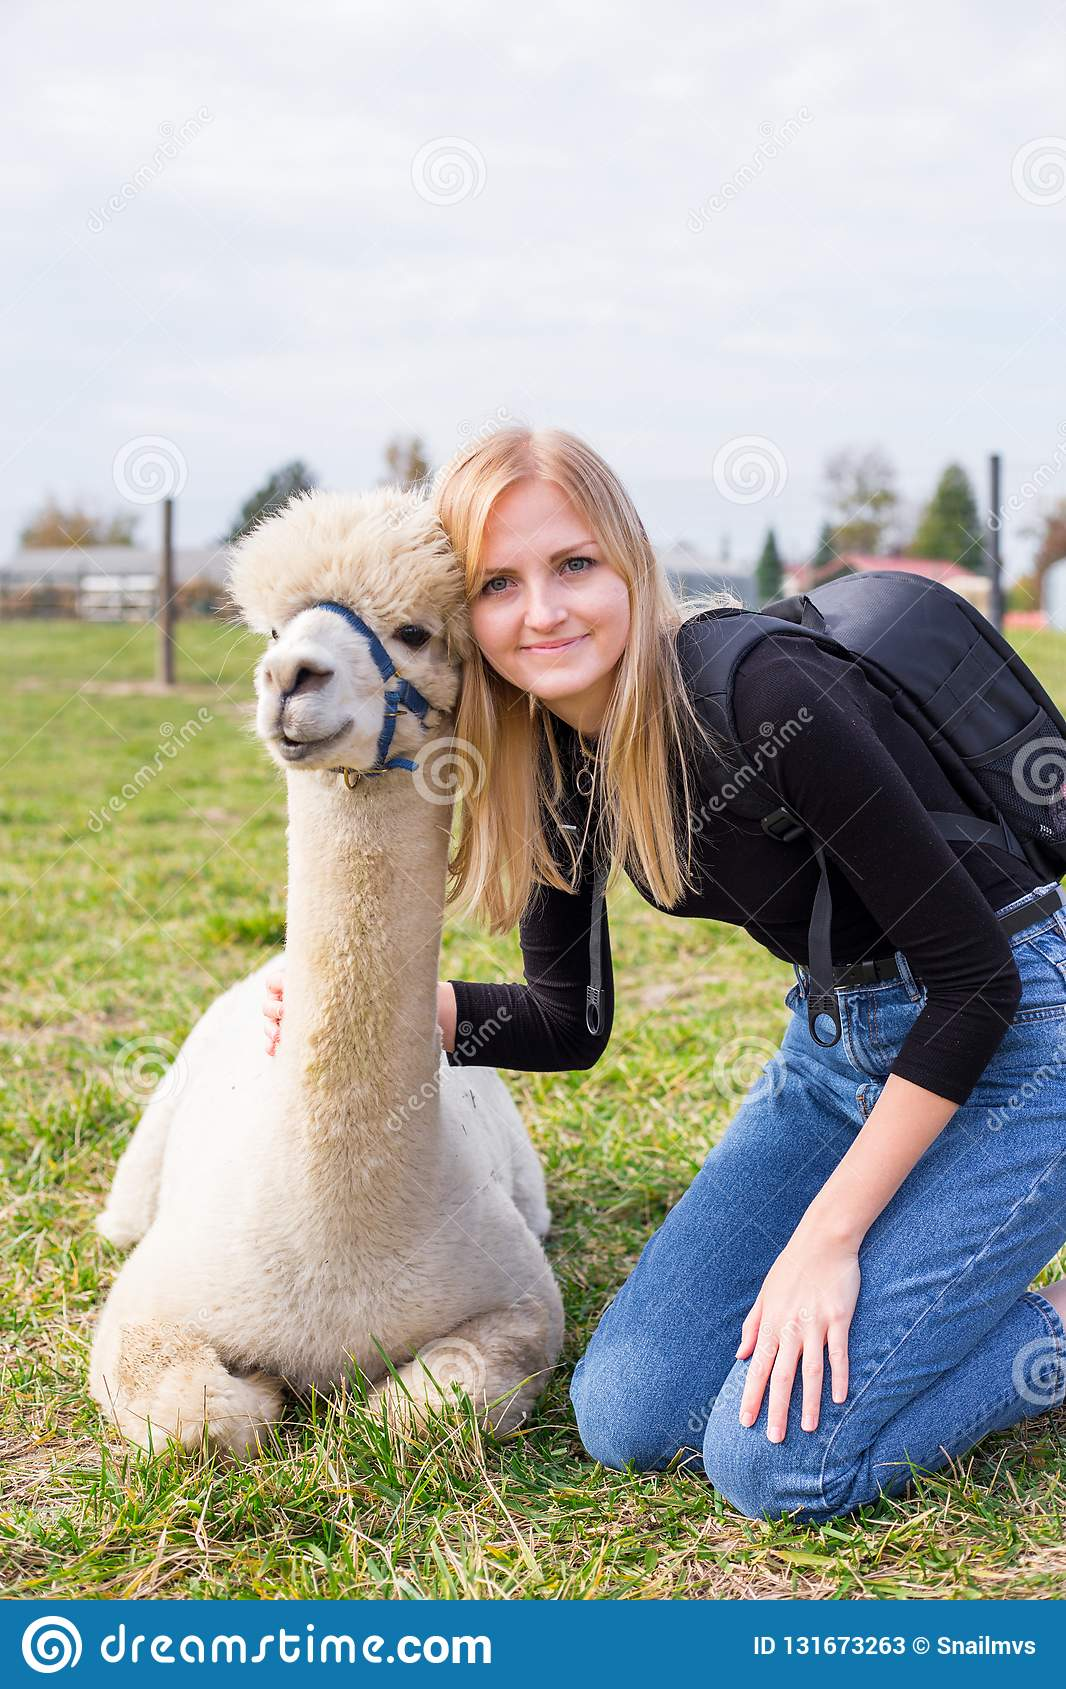 Smiling girl with alpaca animal sitting in a summer green meadow.